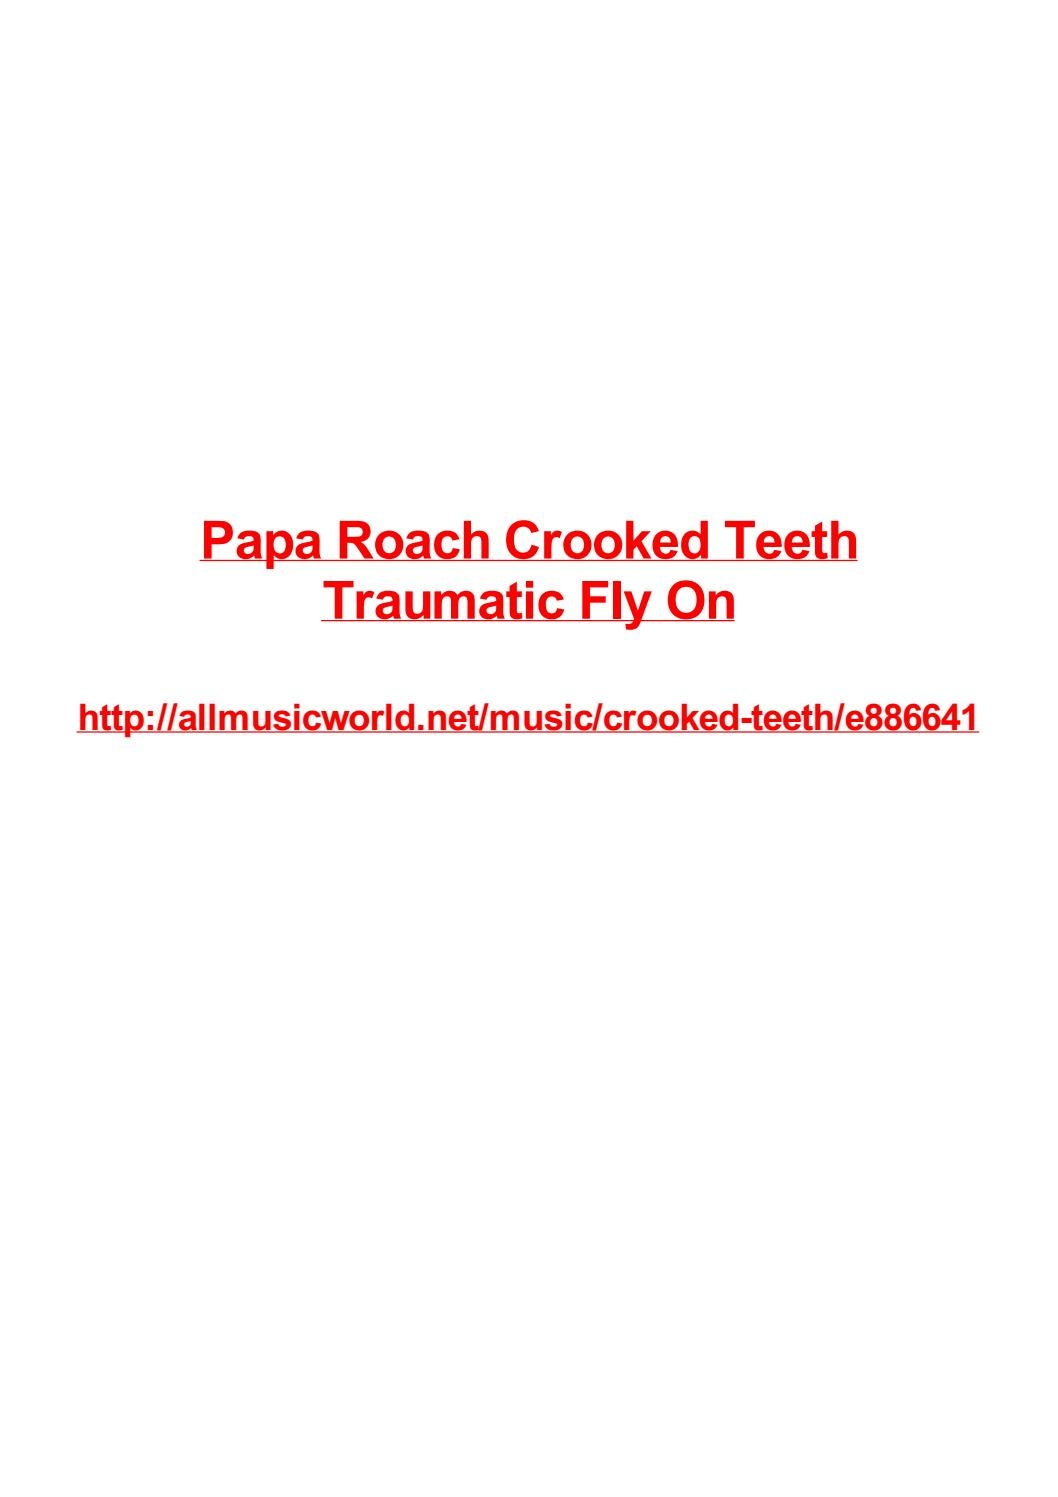 Papa Roach Crooked Teeth Traumatic Fly On By Max Polansky Issuu